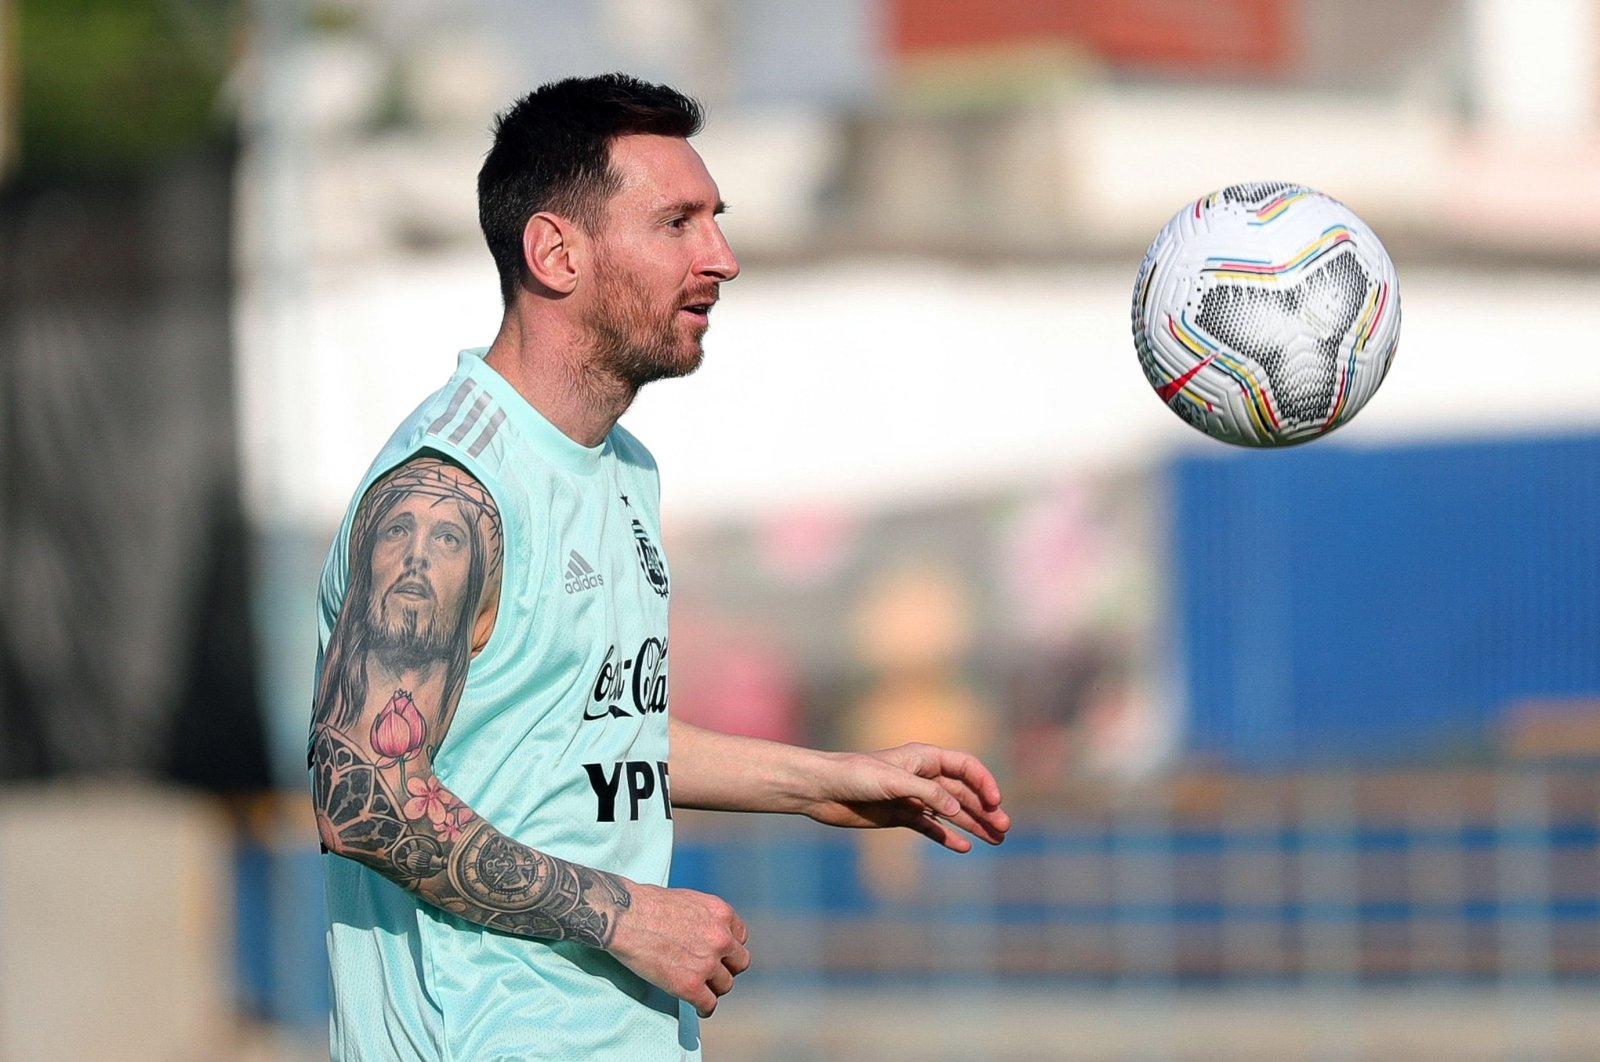 Argentine forward Lionel Messi during a training session in Brasilia, Brazil, June 20, 2021. (Argentinian Football Association/AFP Photo)